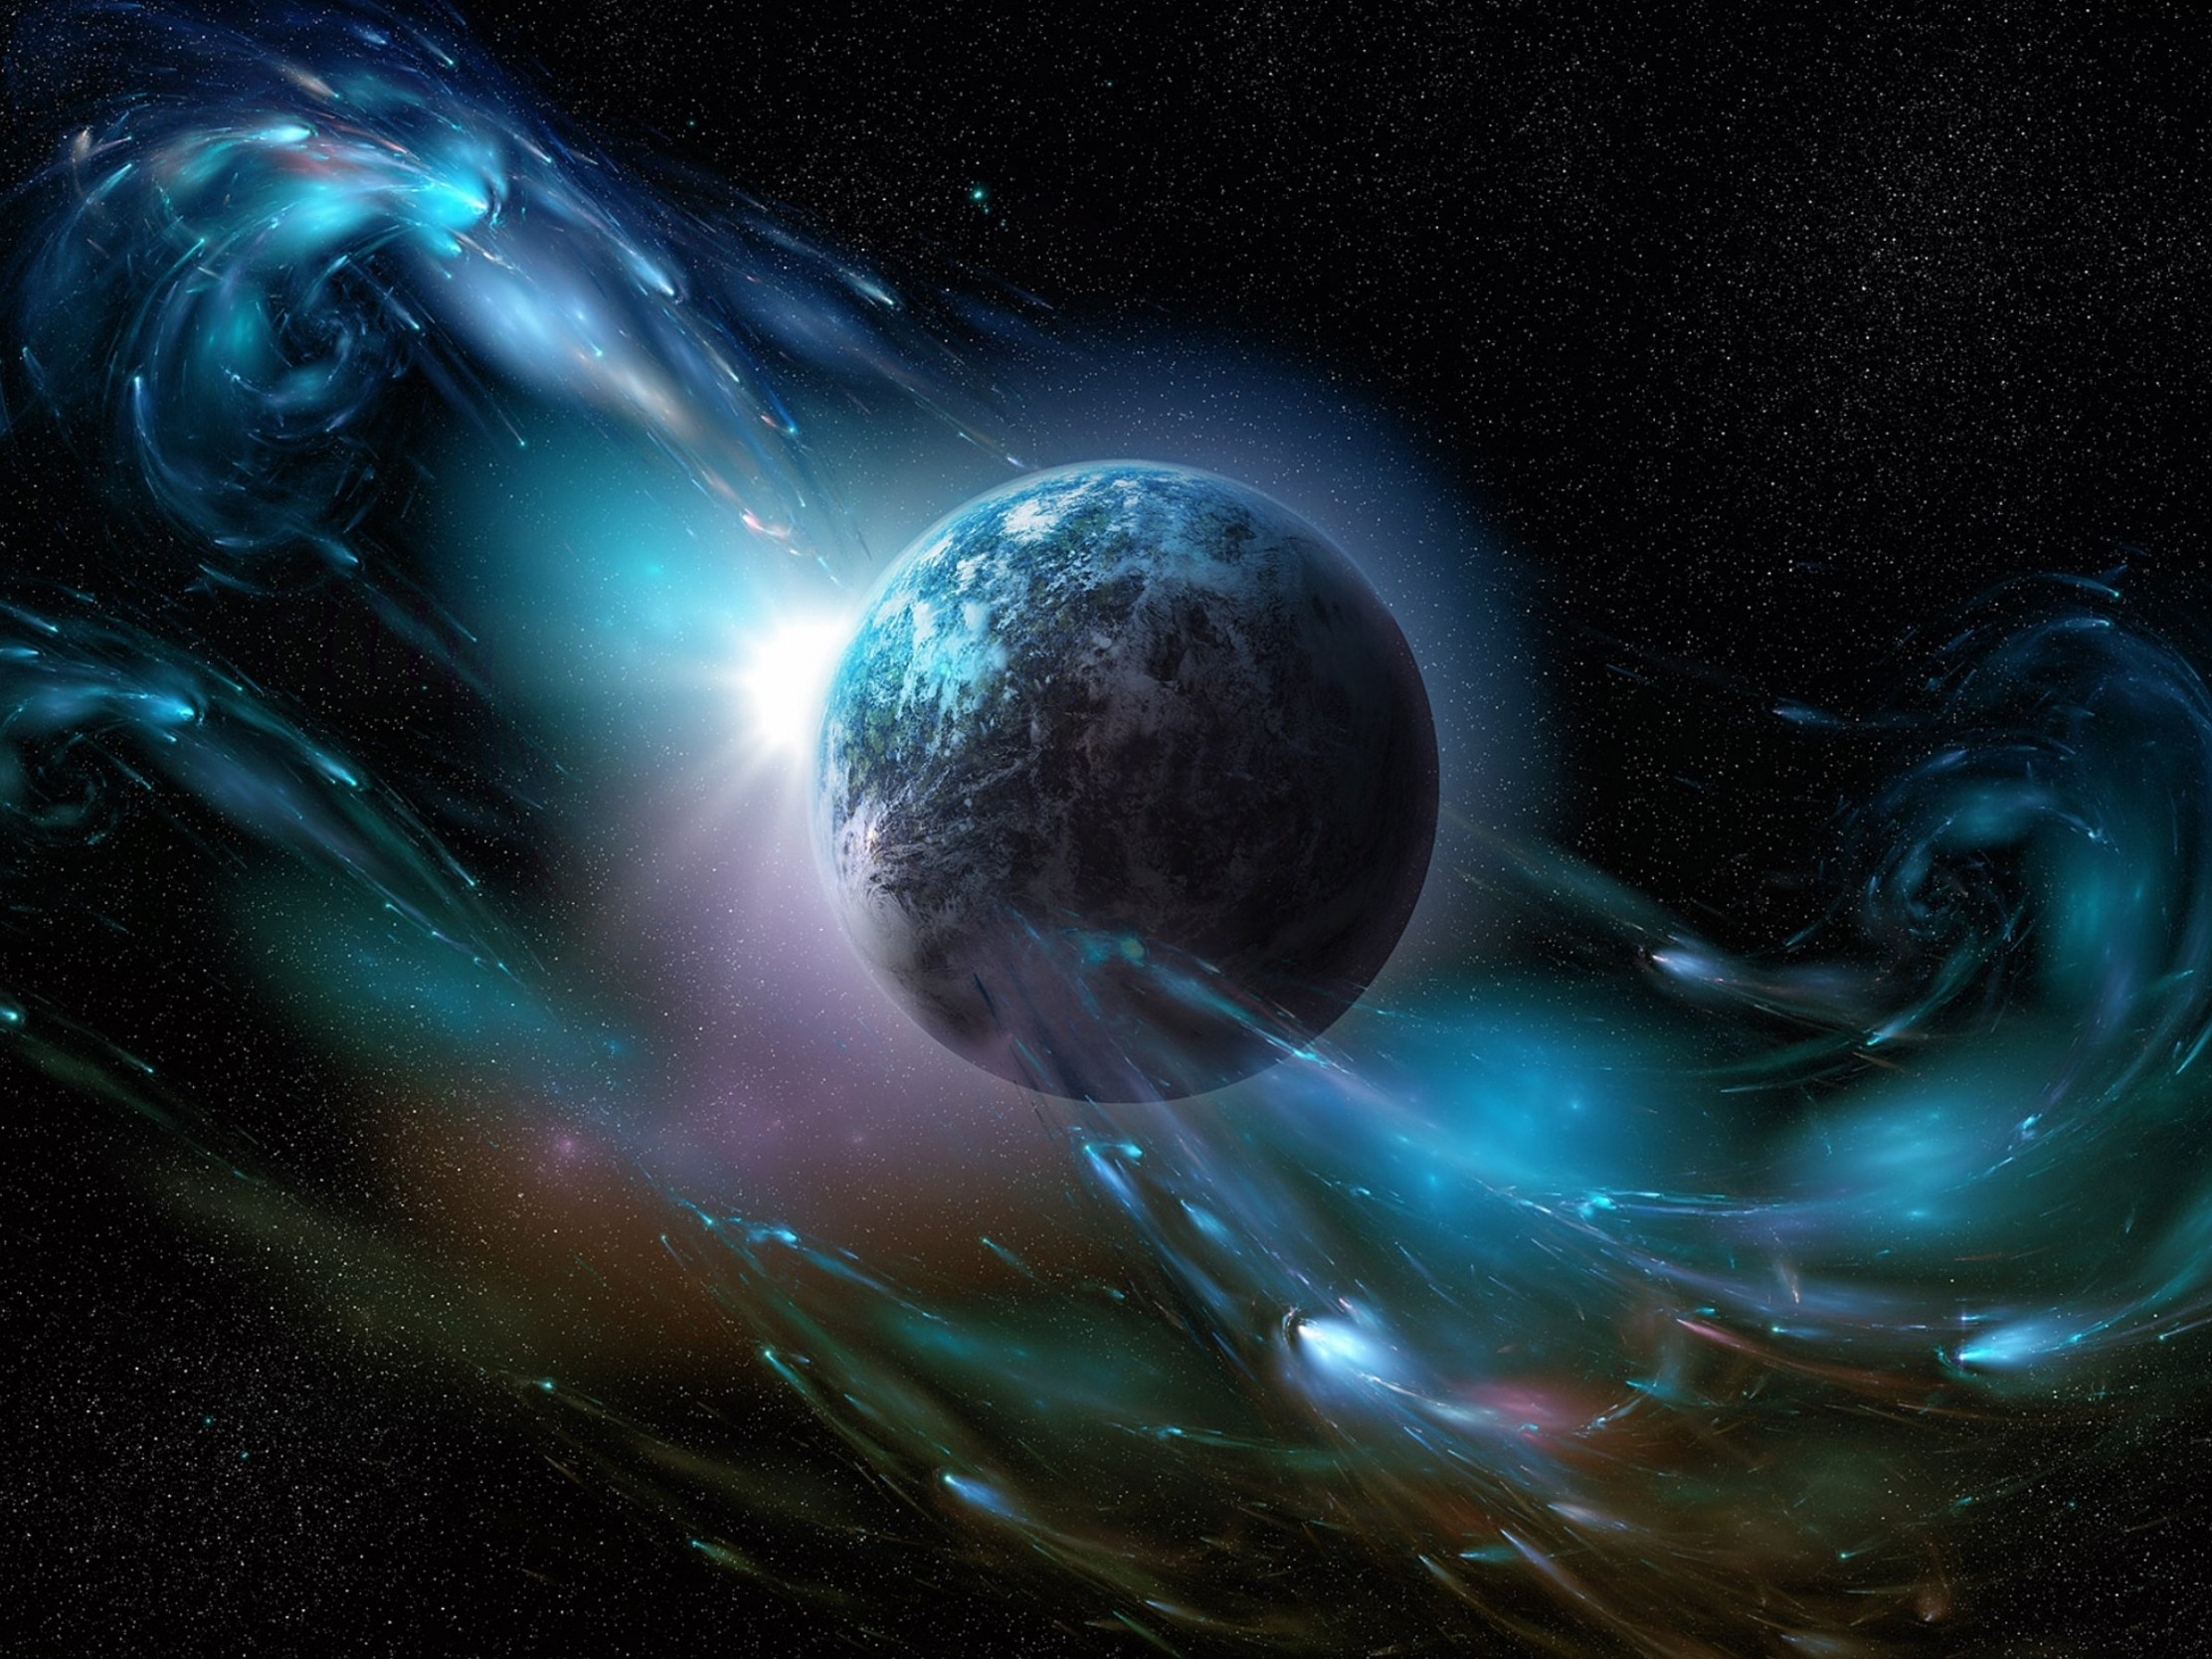 Awesome Space HD Wallpaper iPad Pro